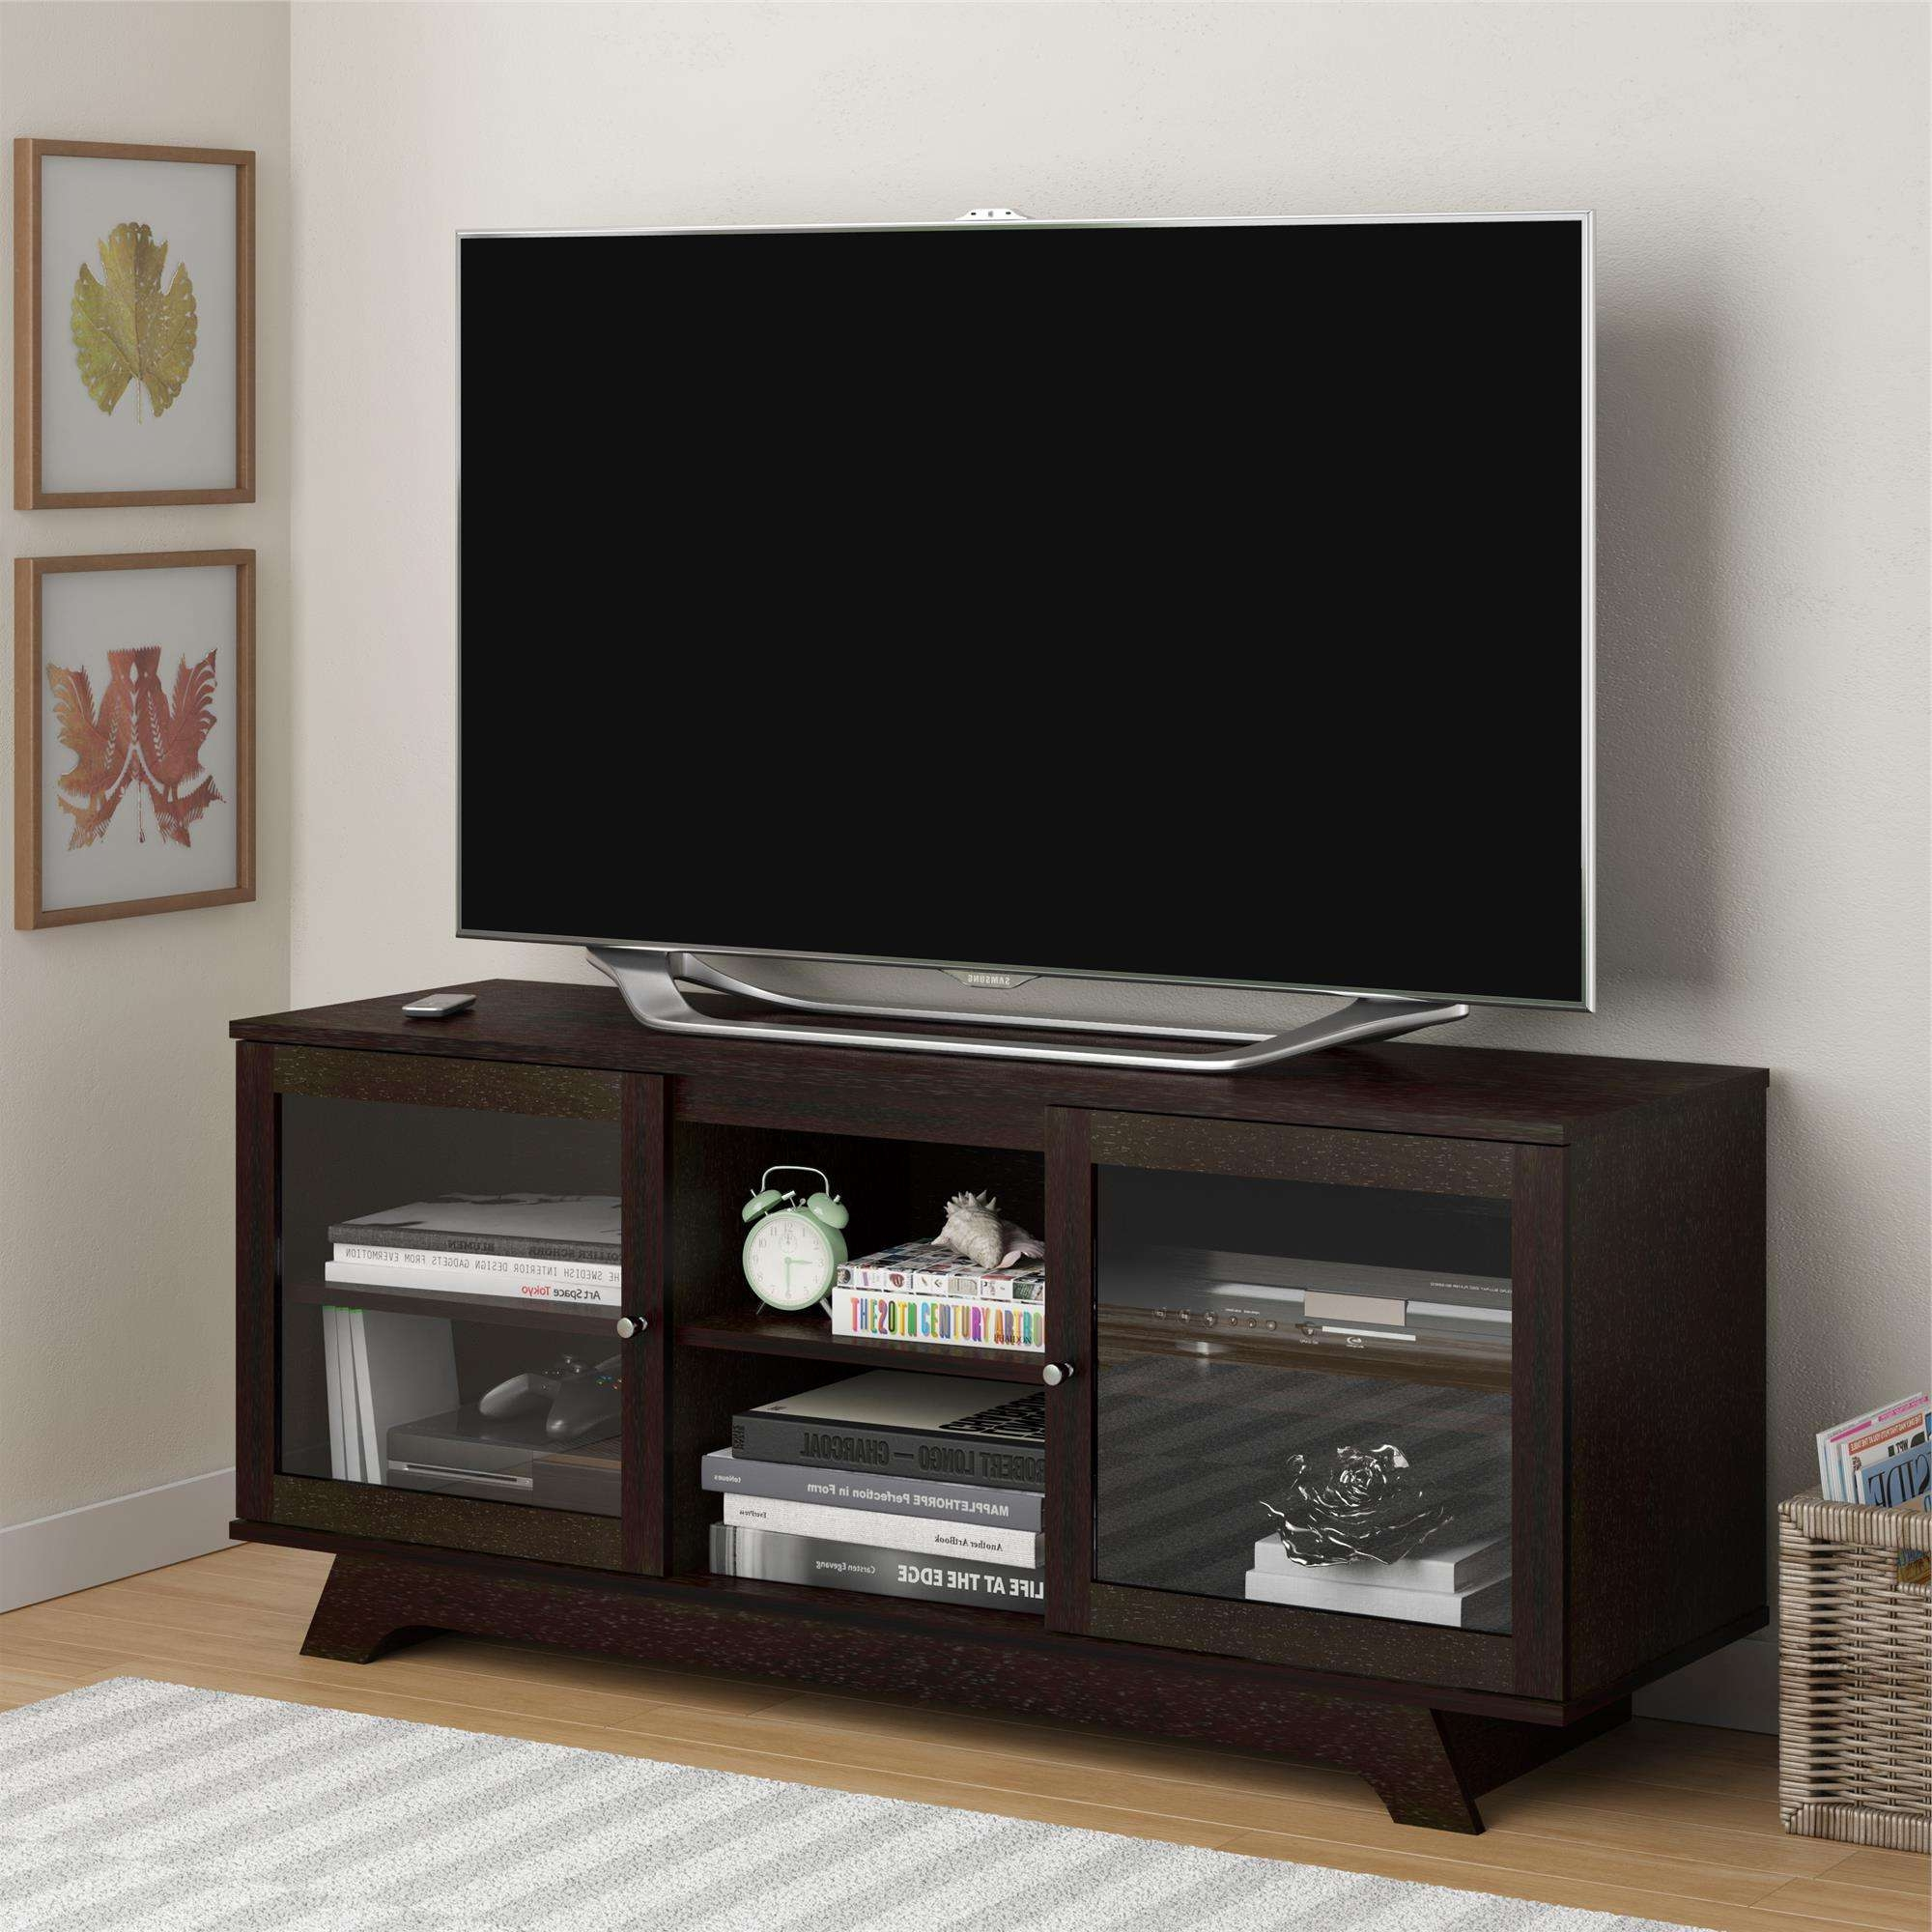 Ameriwood Furniture | Transitional Tv Stand / Entertainment With Bjs Tv Stands (View 2 of 20)